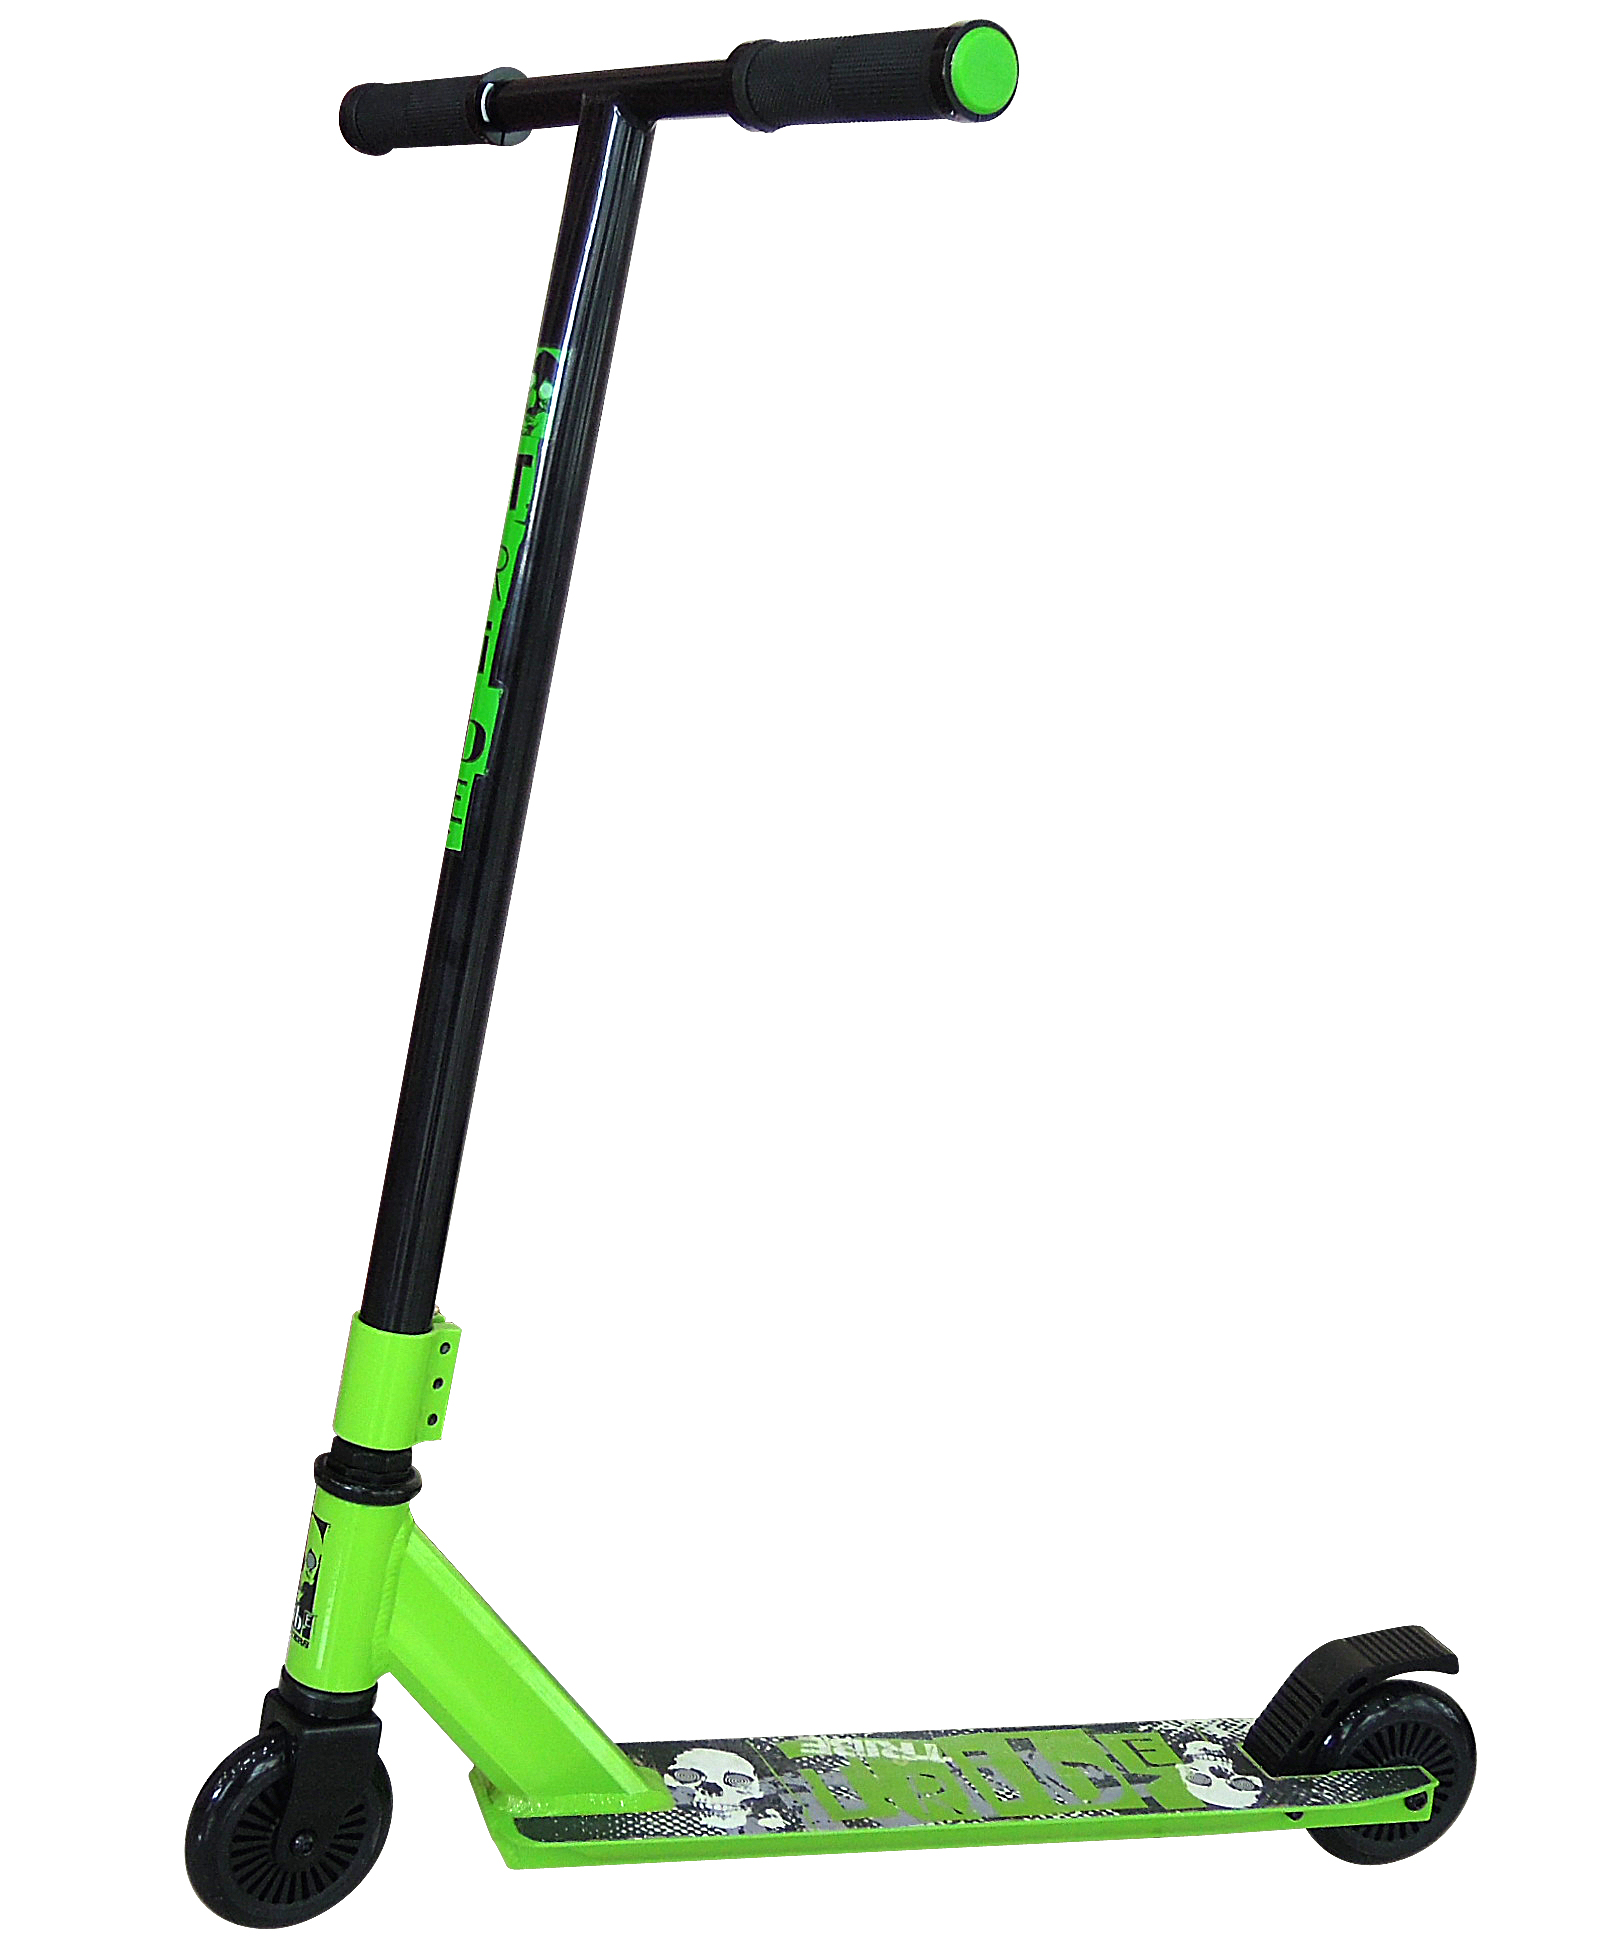 KCB Stunt Kick Scooter for Adults